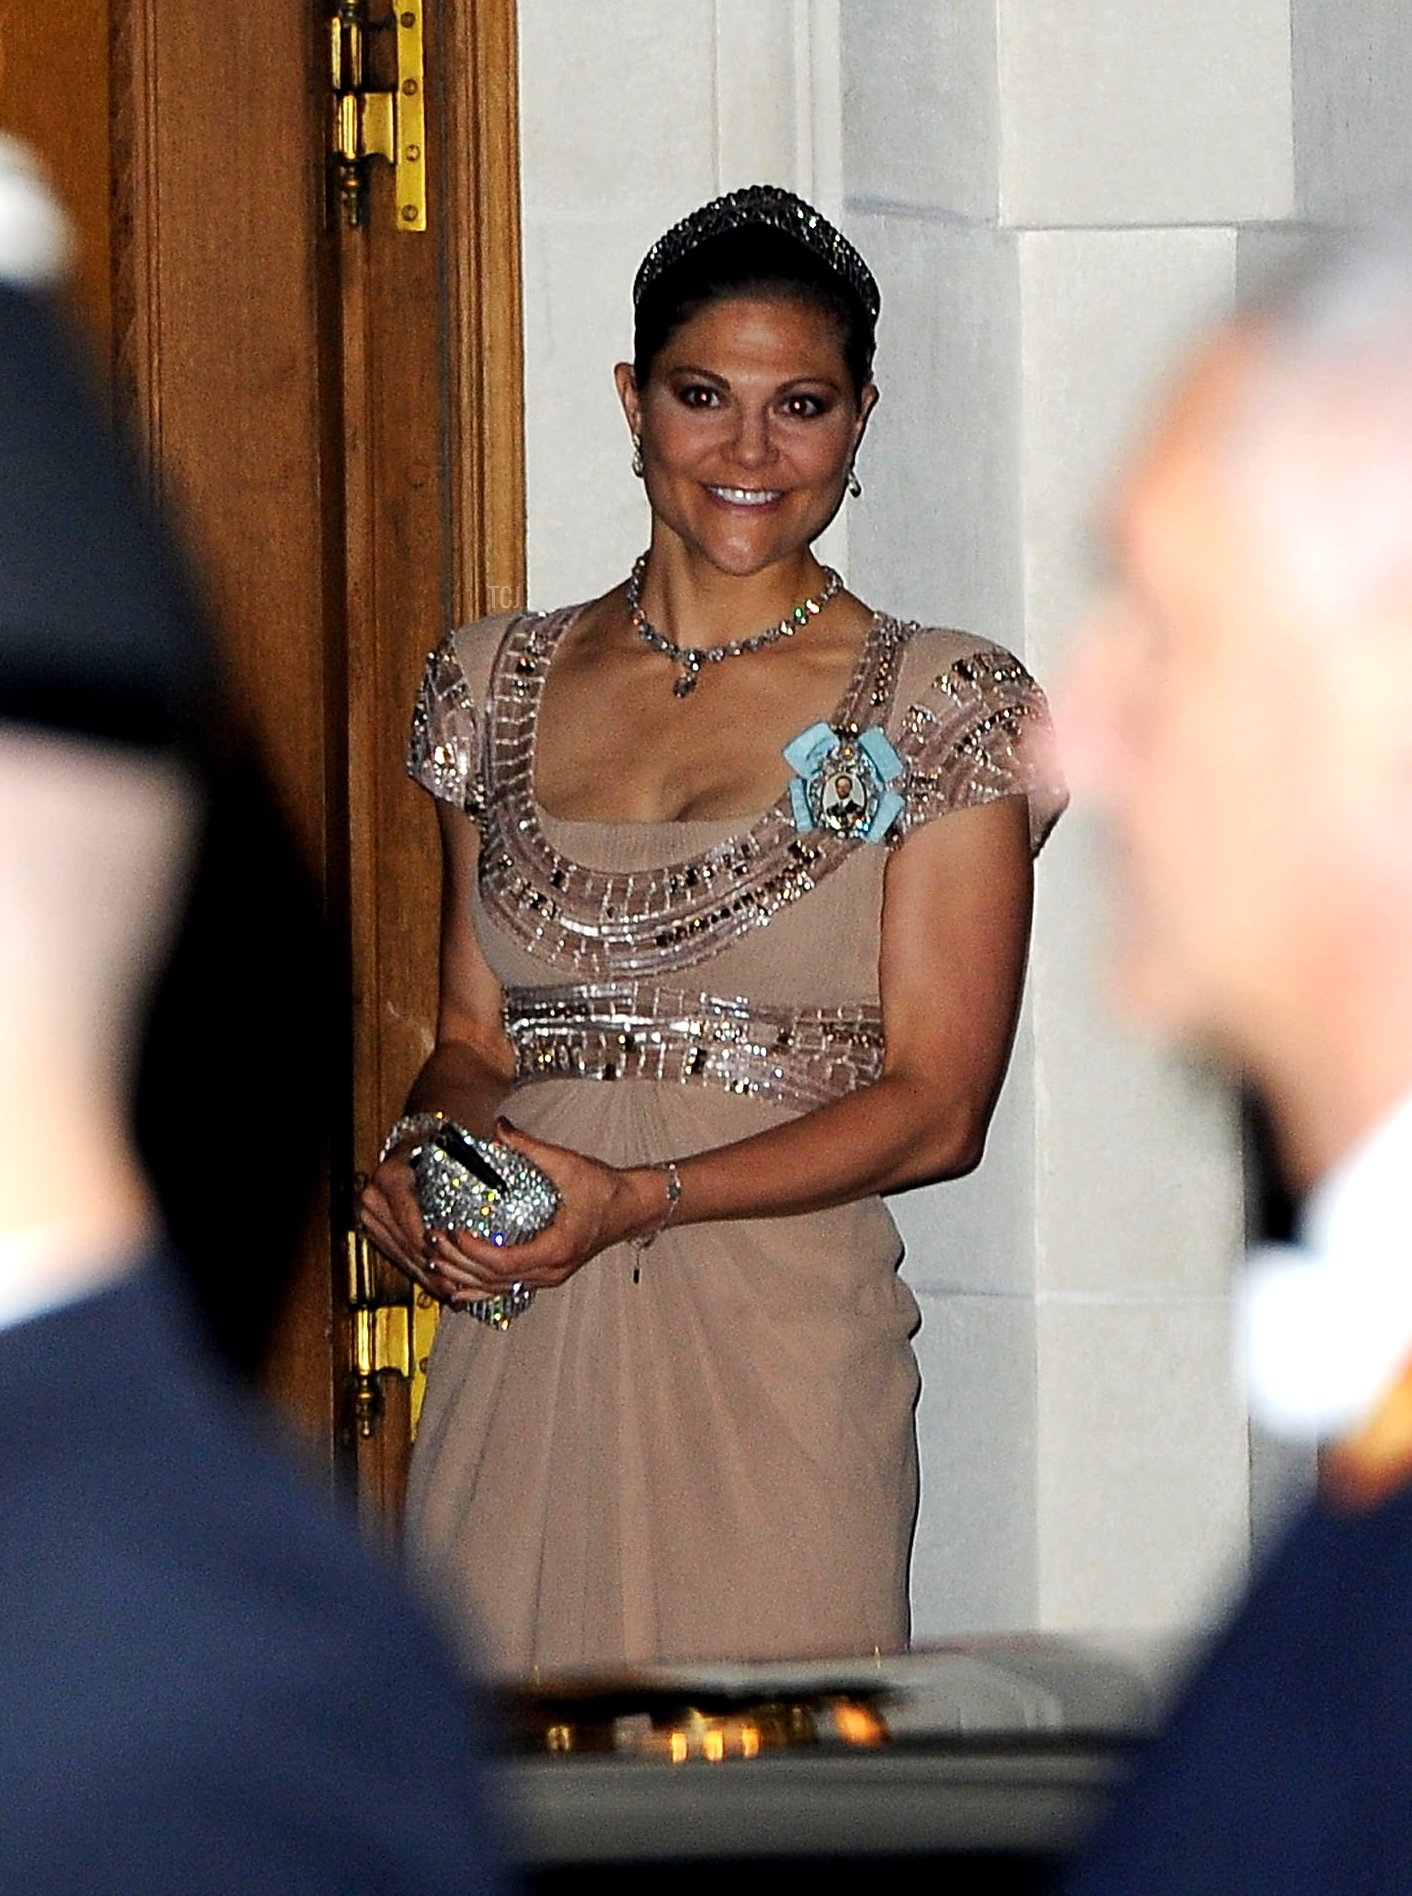 Crown Princess Victoria of Sweden attends the Gala dinner for the wedding of Prince Guillaume Of Luxembourg and Stephanie de Lannoy at the Grand-ducal Palace on October 19, 2012 in Luxembourg